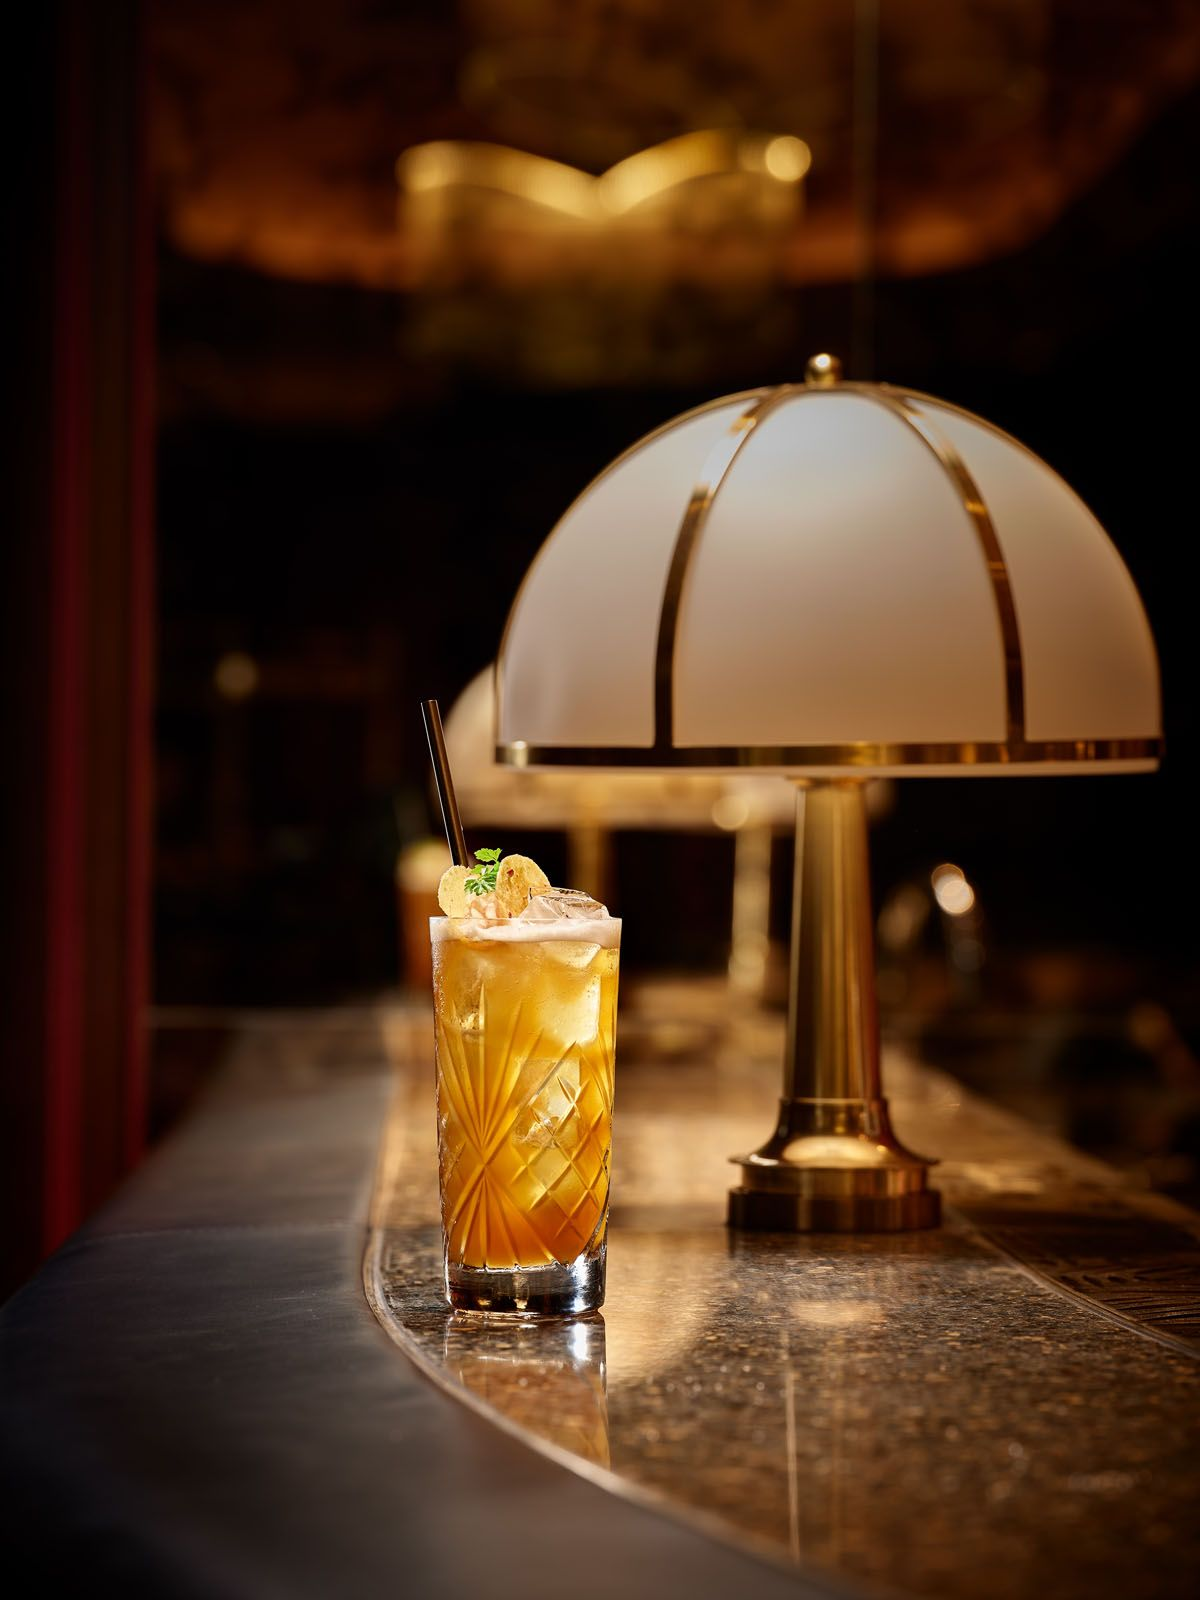 Idlewild Serves Cocktails Inspired By The Transatlantic Route